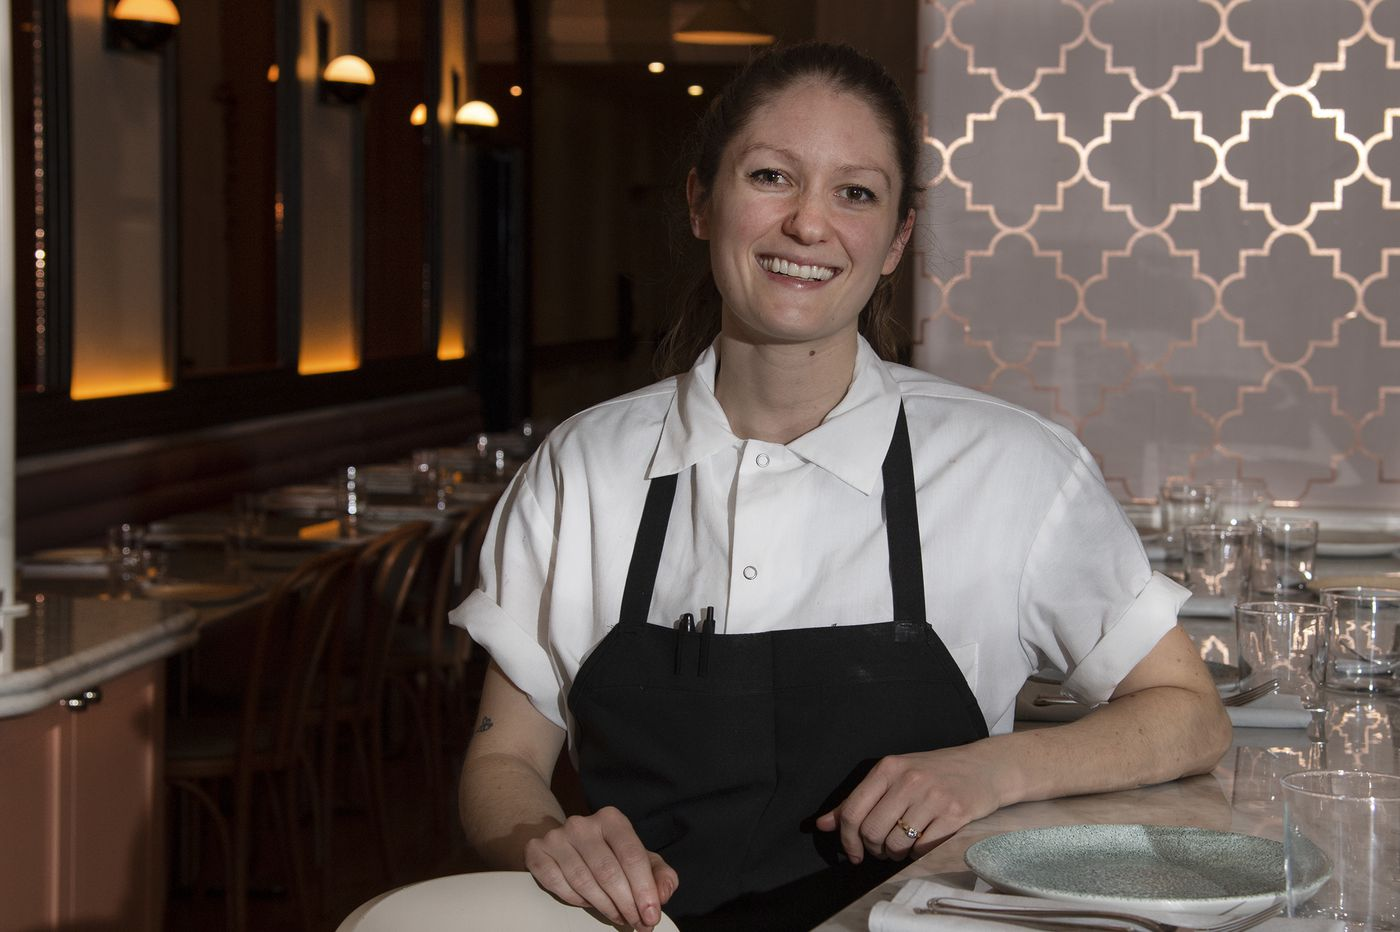 Camille Cogswell of K'Far is named one of Food & Wine's best new chefs